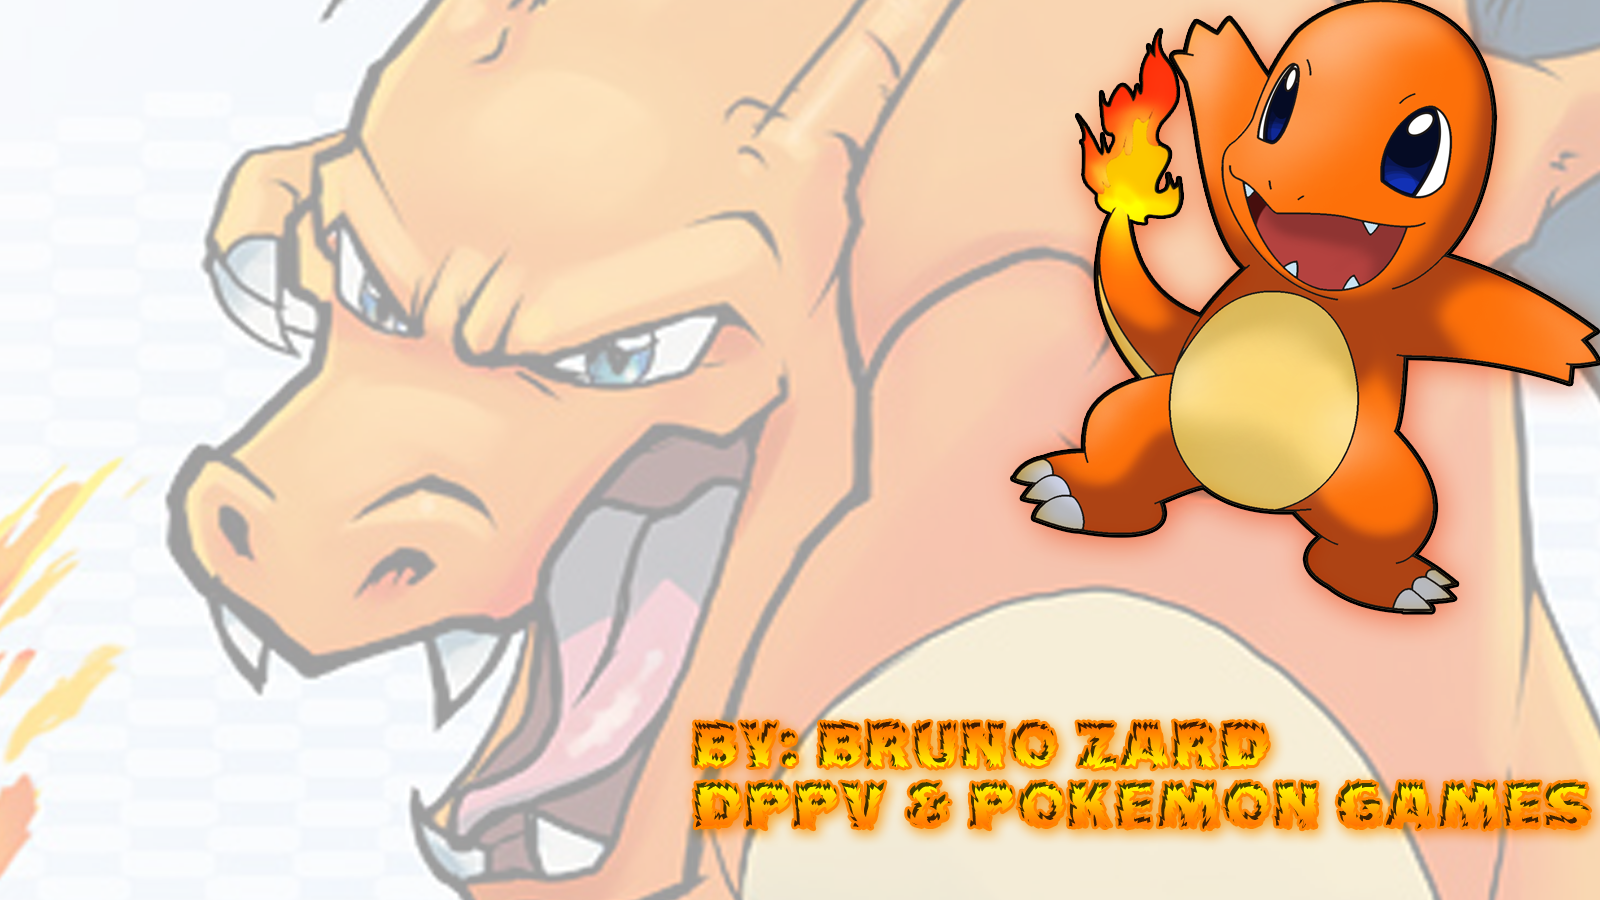 http://4.bp.blogspot.com/-JbWwXkH_UTc/TcXR41LjcJI/AAAAAAAAAgs/3ze9Waoe0wE/s1600/Wallpapaer+Charizard+1.png